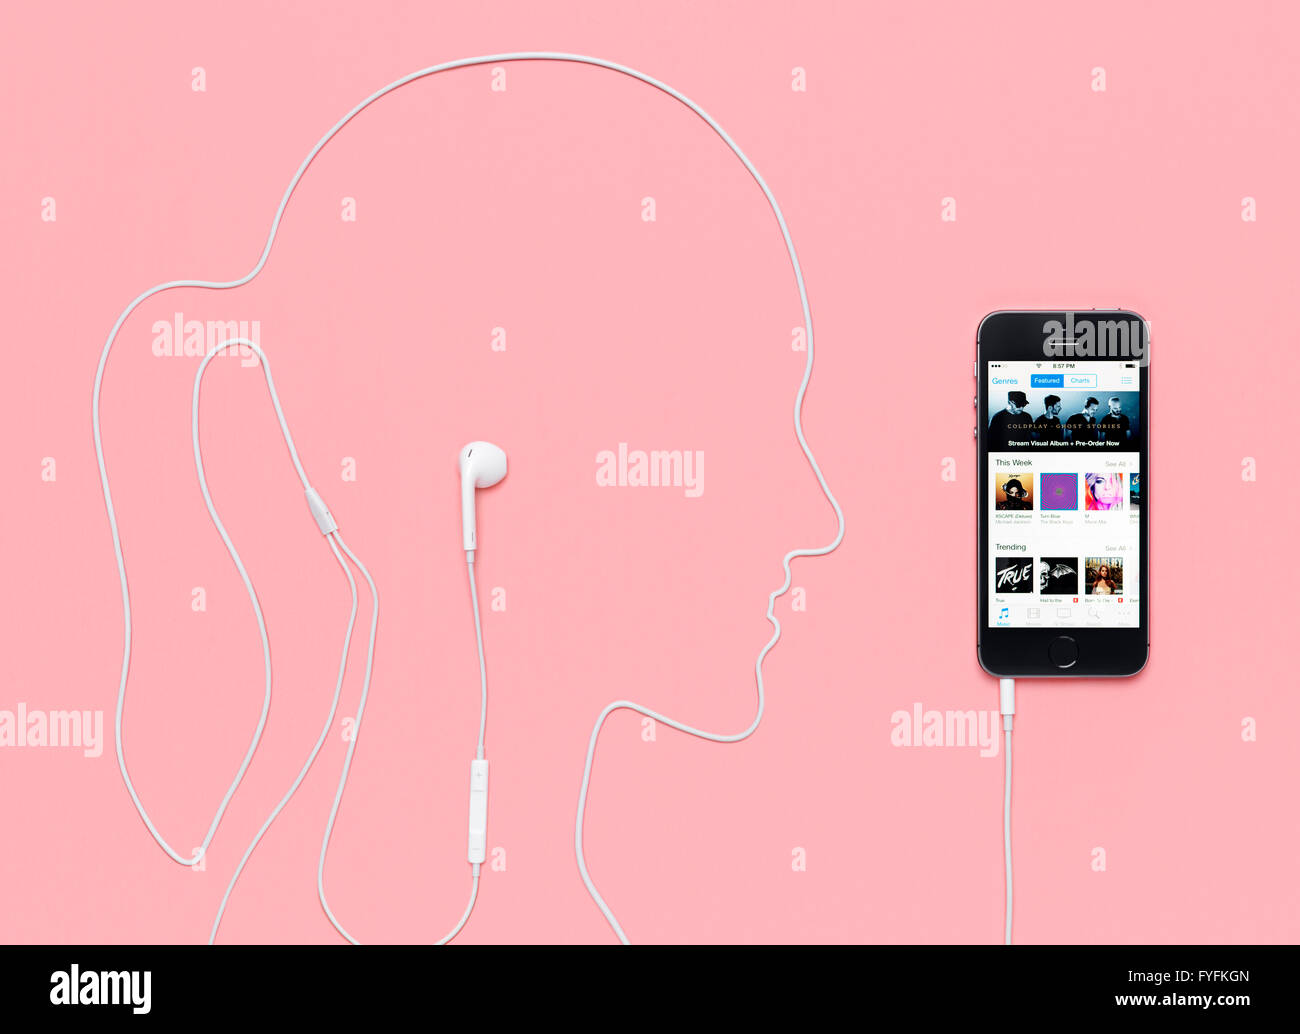 Headphone cable laid out in the shape of a woman's head plugged into an iPhone 5s displaying the iTunes music - Stock Image